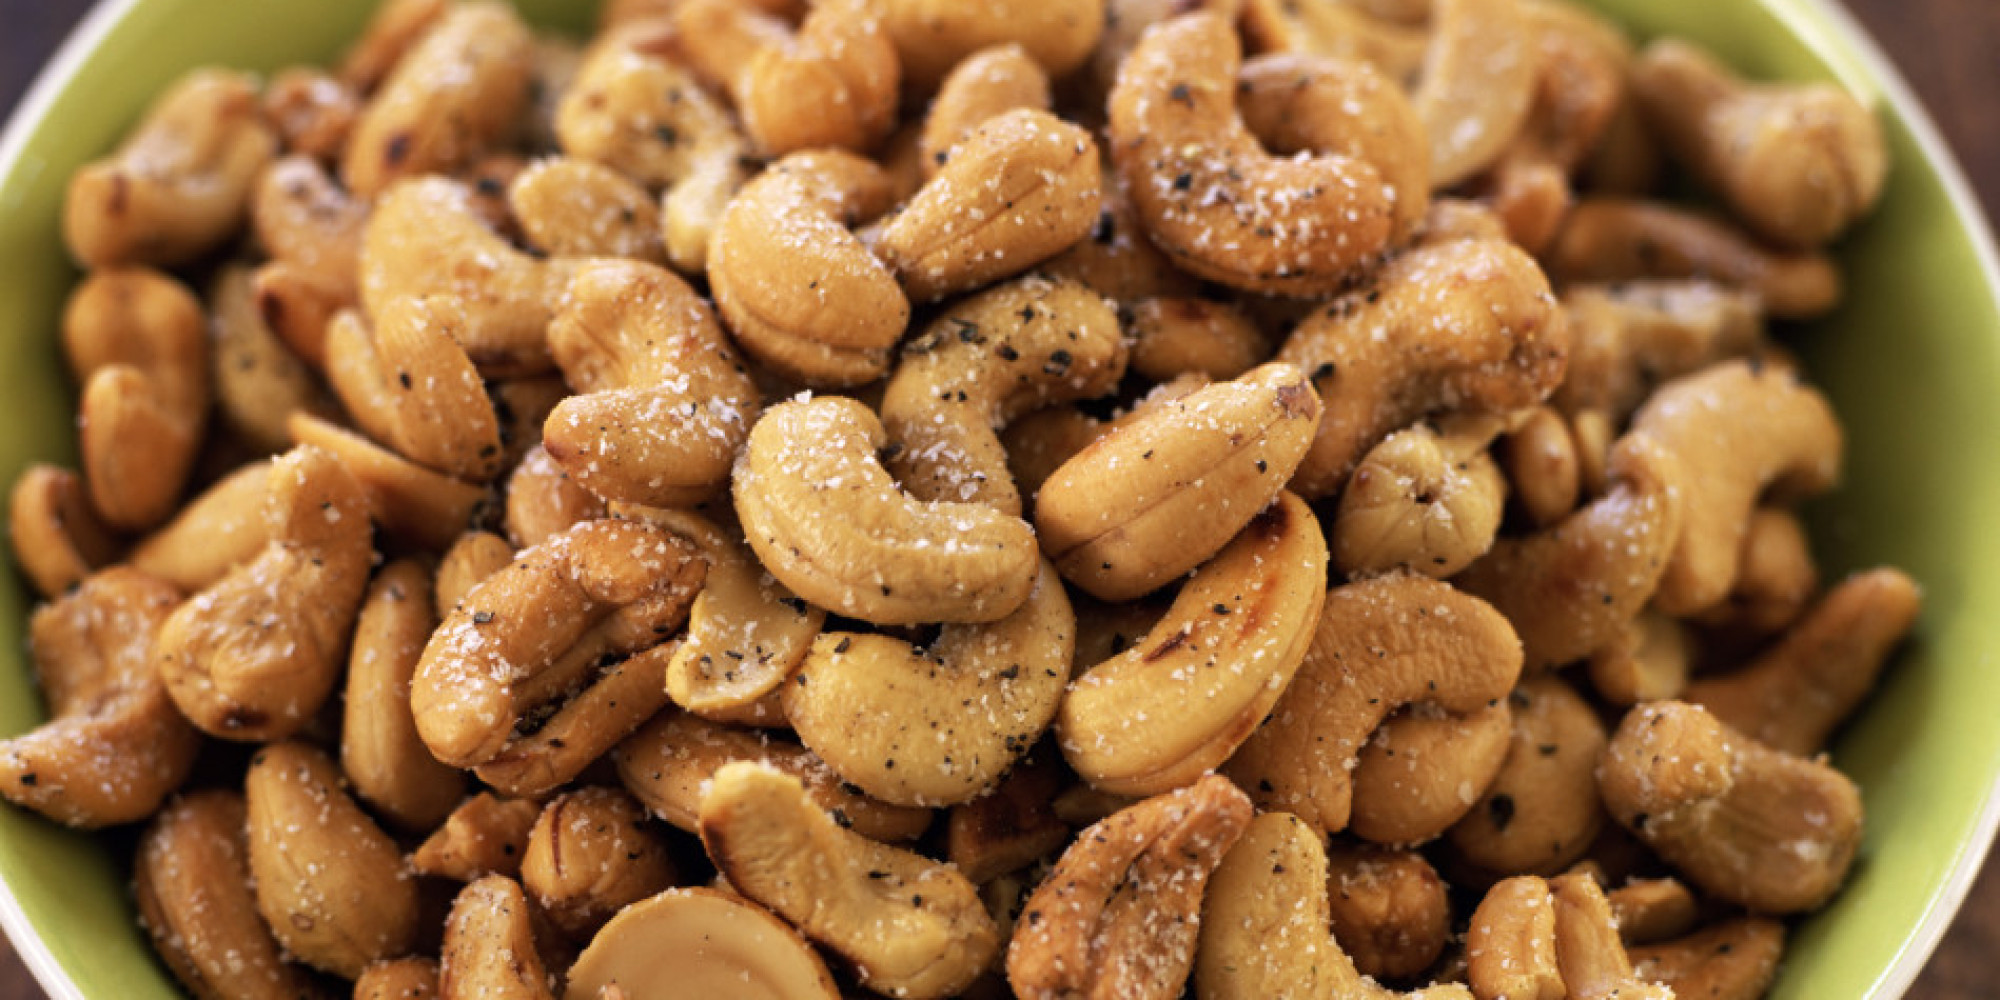 Easy Healthy Snacks For Work  Healthy Snacks You Should Keep At Your Desk